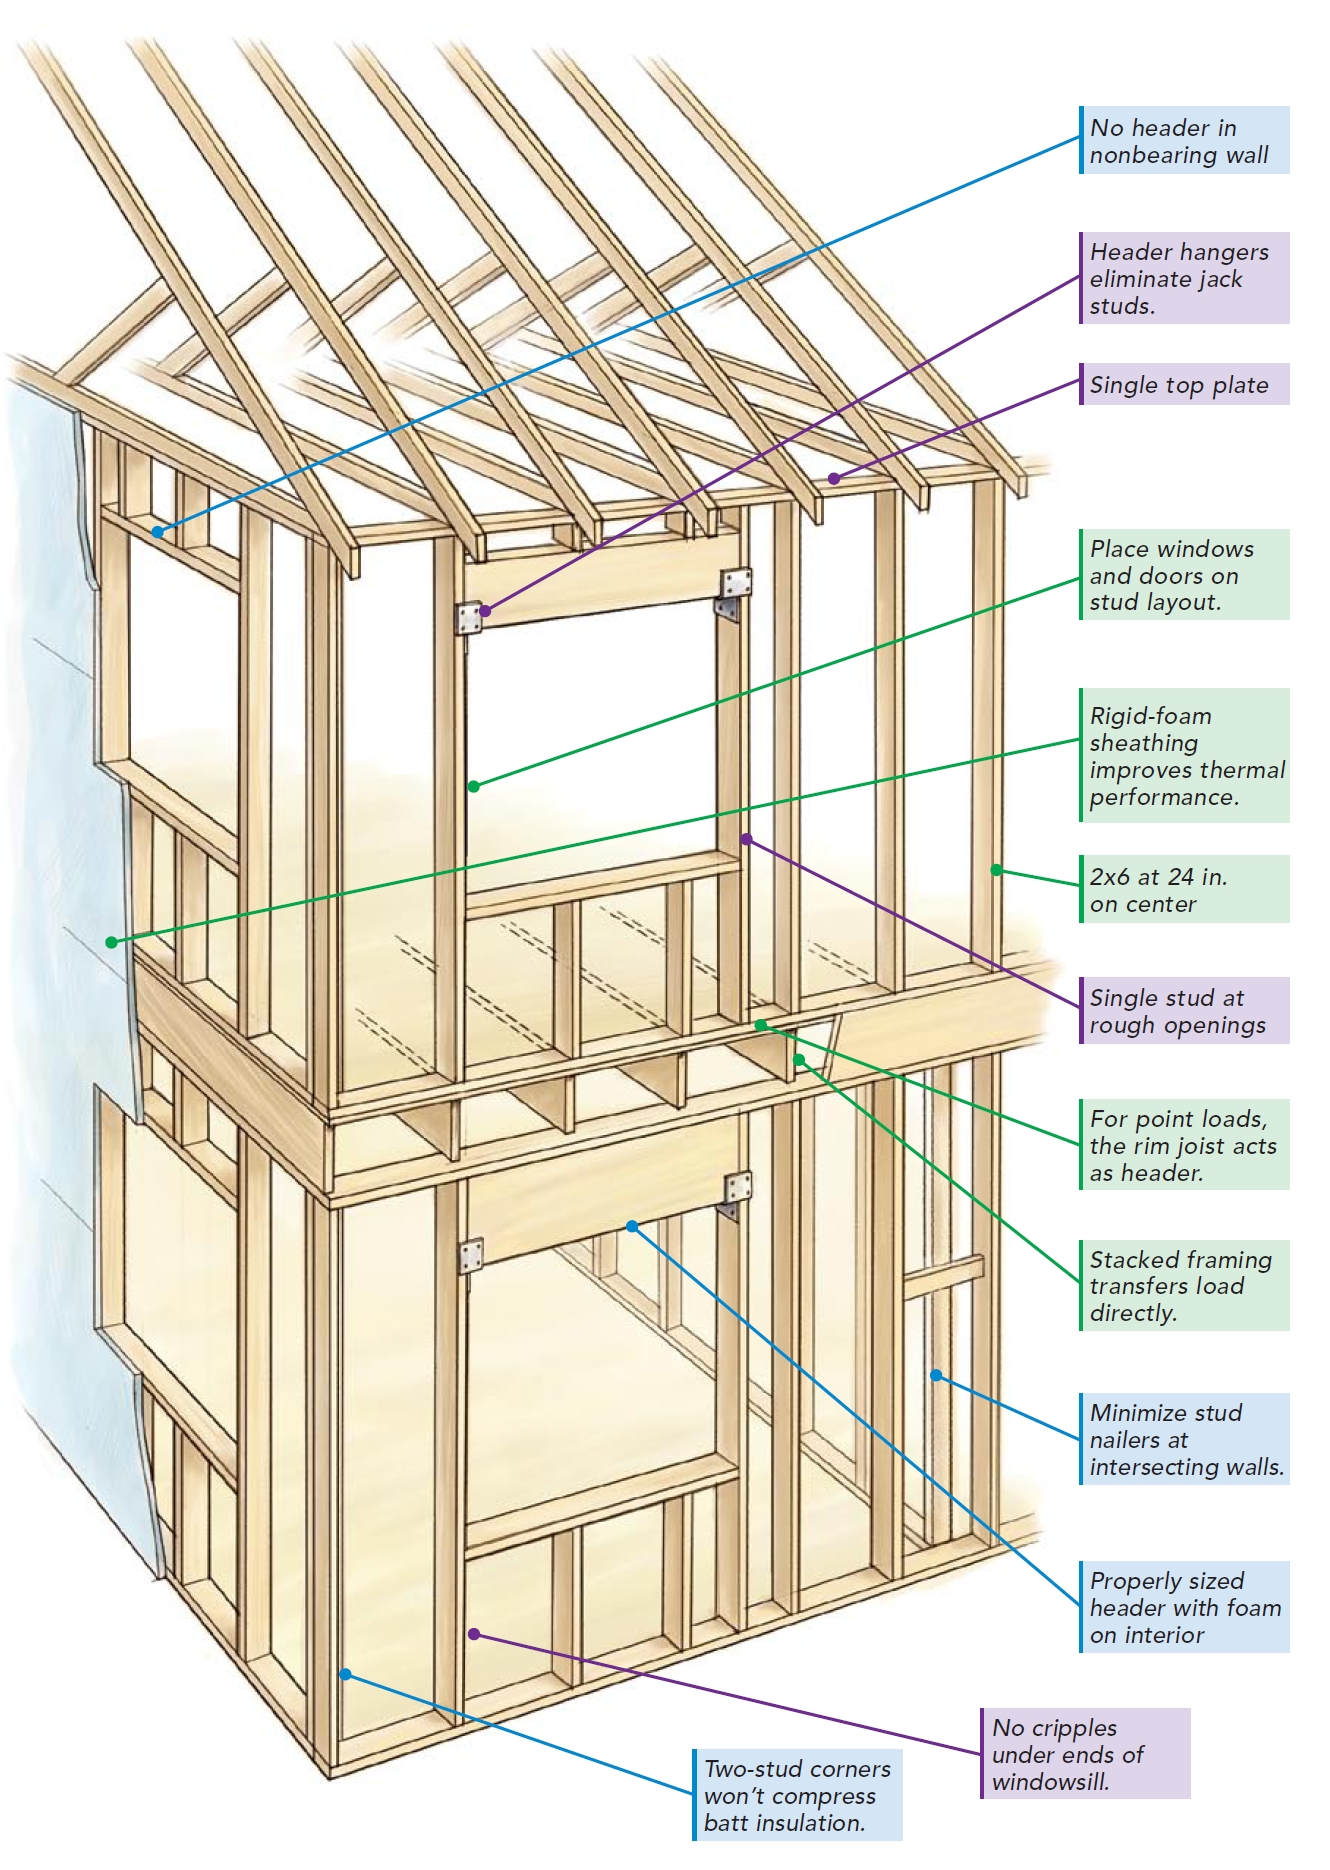 Effective R Value of Common Wall Construction Methods | Math ...